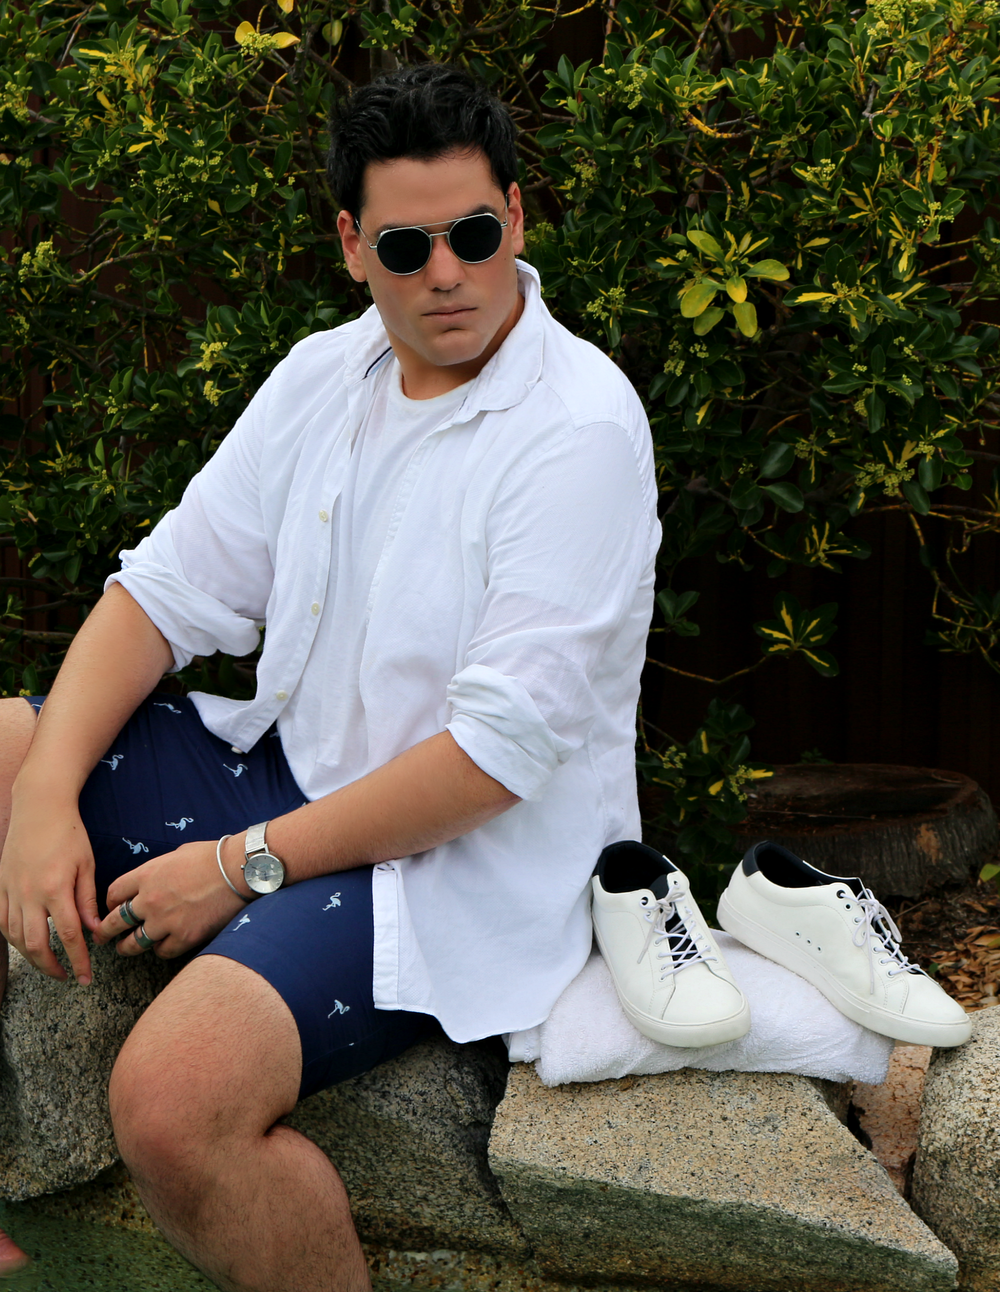 Style | TPD EditSUMMER ESSENTIALS FOR HIM - Linen shirts, shorts, tees, polos...here are a few things you will find me wearing this summer.